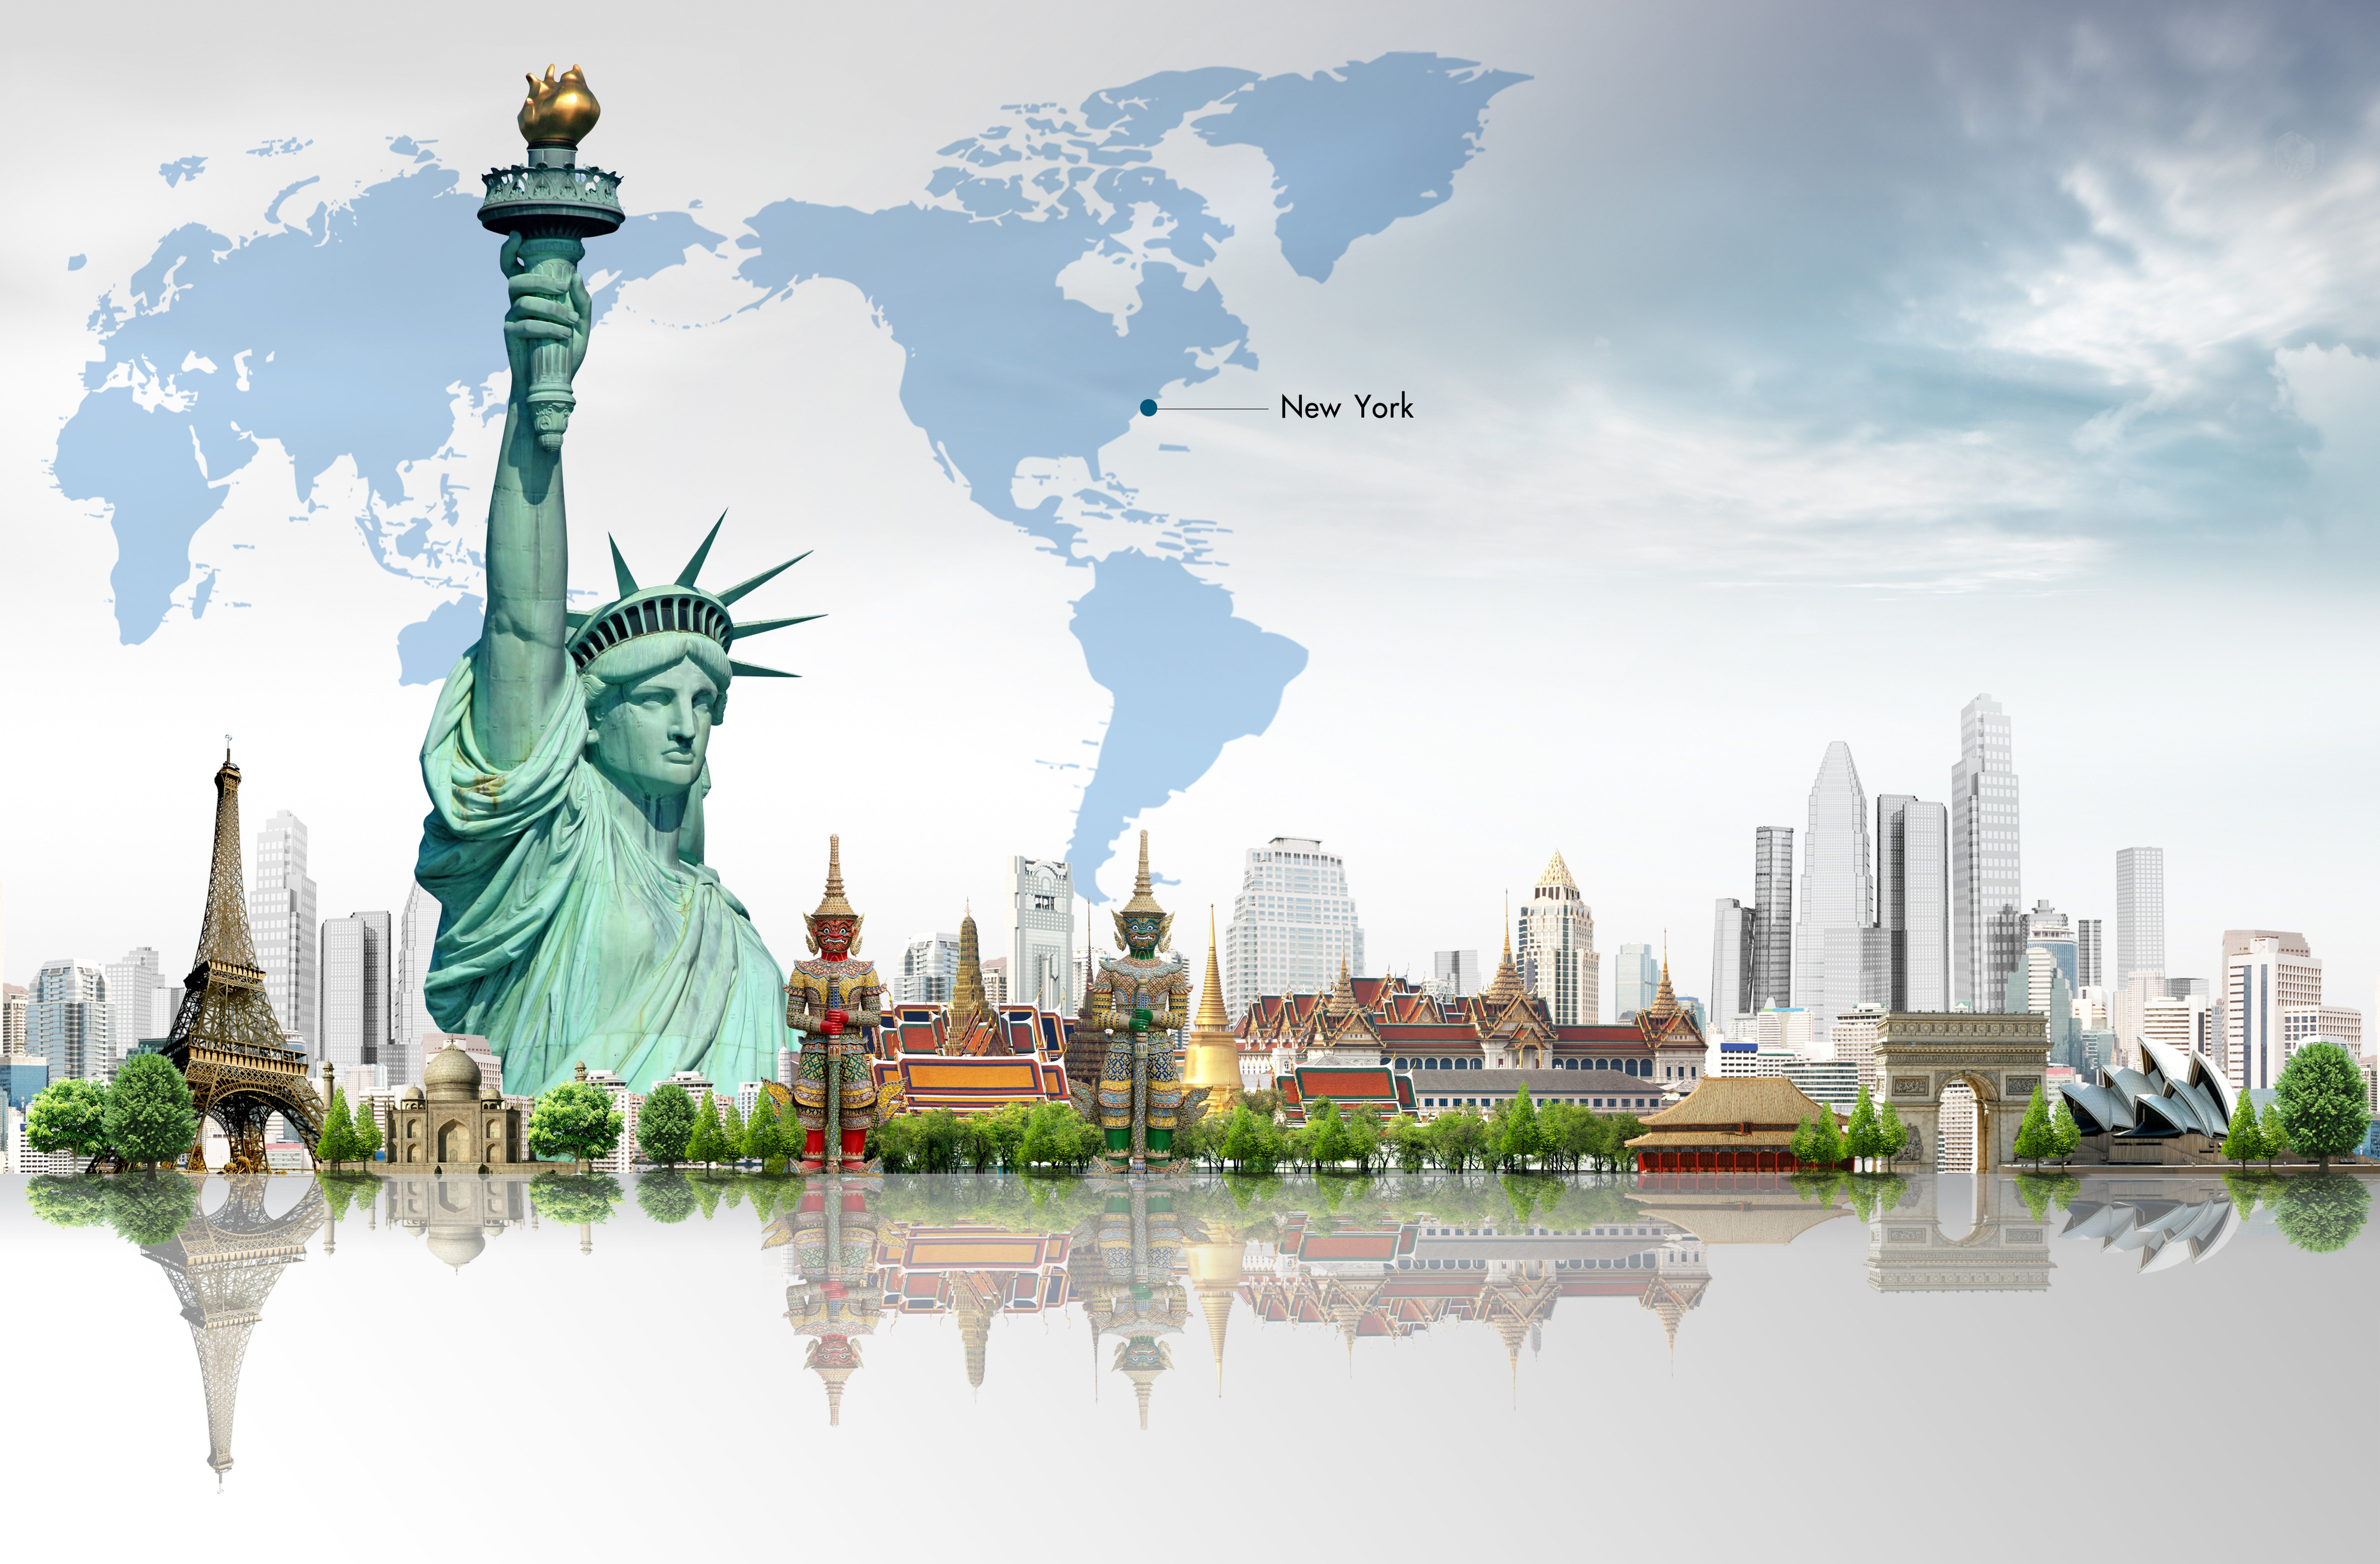 Best Travel Pictures Hd Travel Wallpaper Travel Pictures Statue Of Liberty